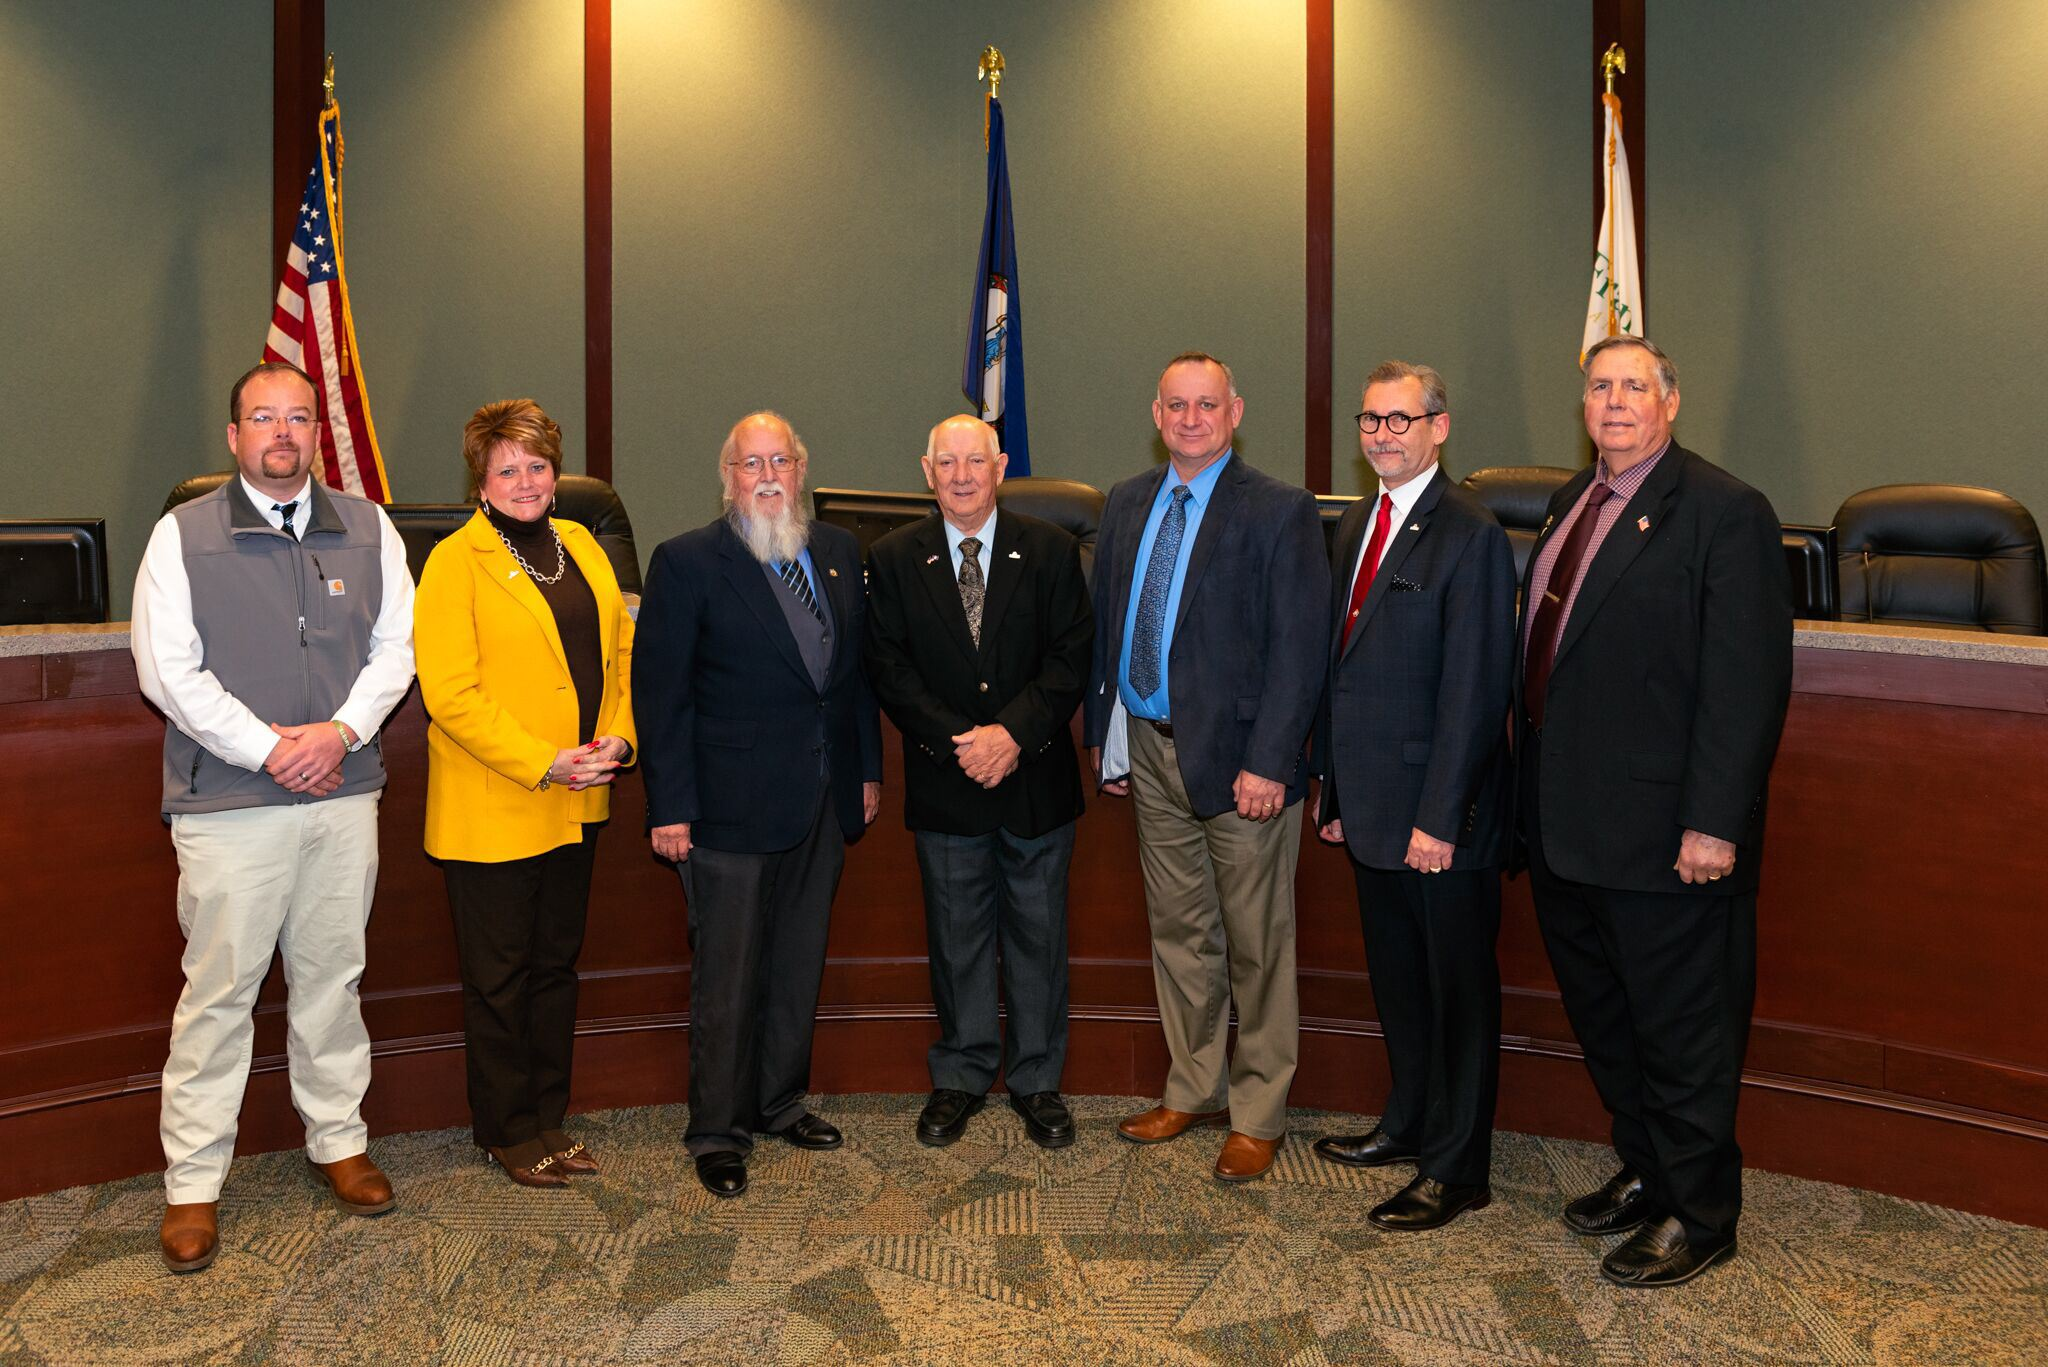 2020 Board of Supervisor Members